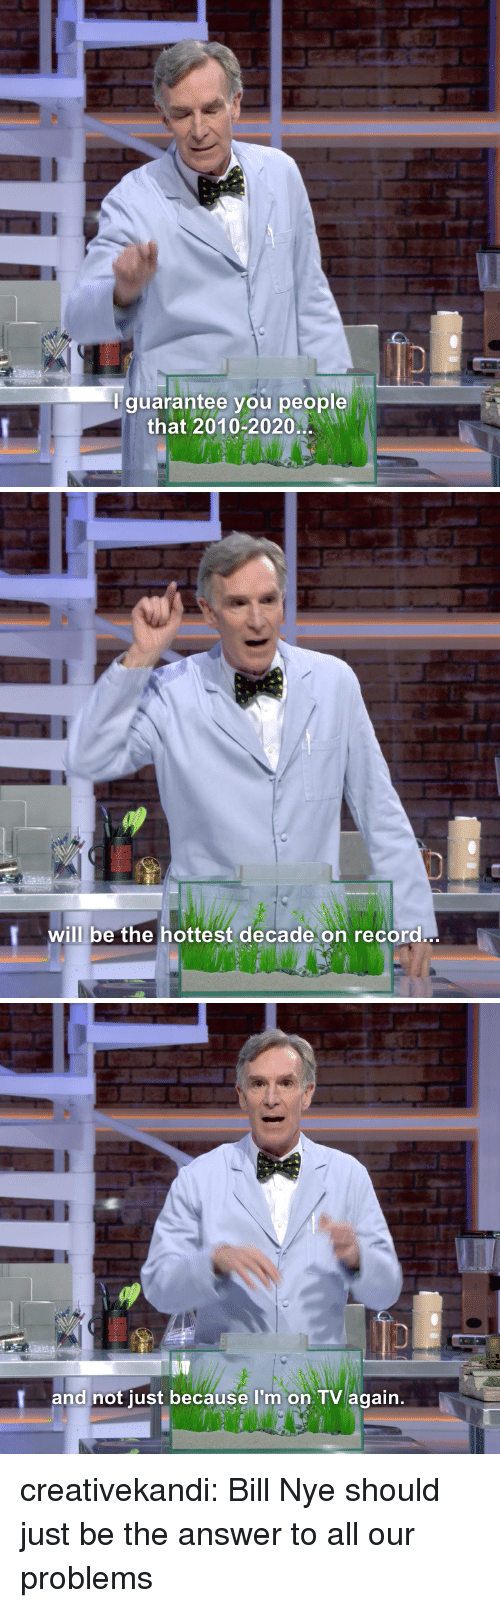 Bill Nye, Target, and Tumblr: guarantee you people  that 2010-2020   will be the hottest decade on recora   and not just because I'm on TV again. creativekandi:  Bill Nye should just be the answer to all our problems